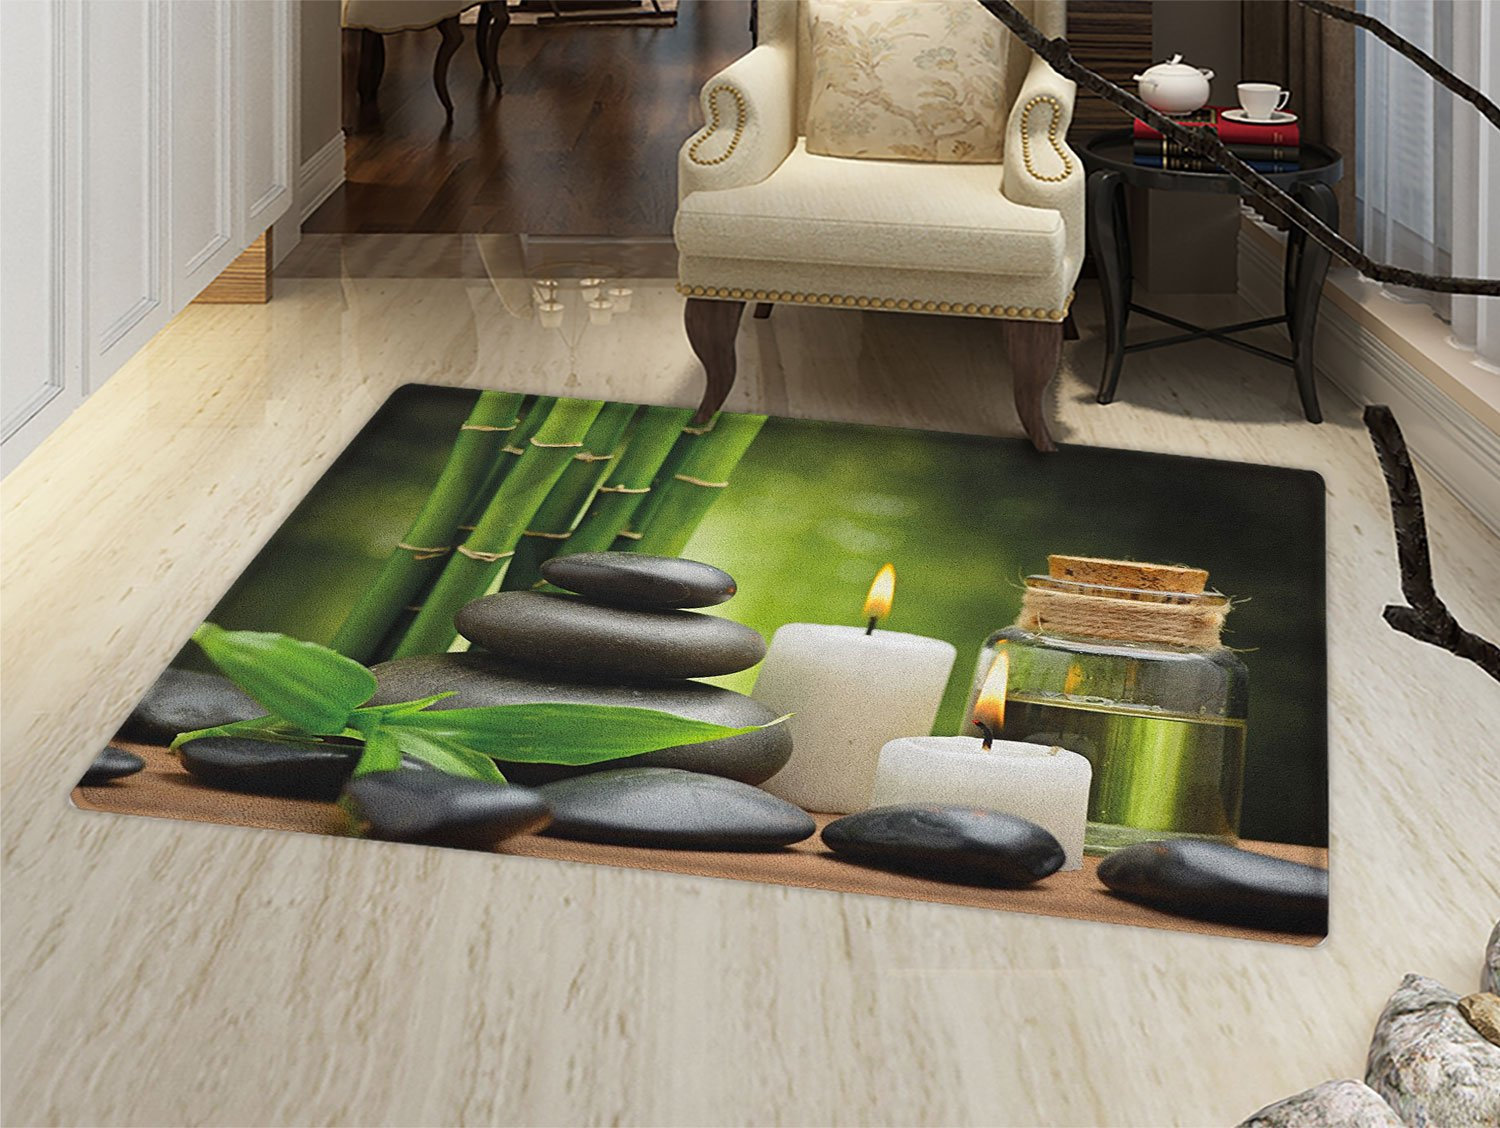 Spa Door Mat Small Rug Hot Massage Rocks Combined with Candles and Scents Landscape of Bamboo Print Bath Mat 3D Digital Printing Mat Green White and Black